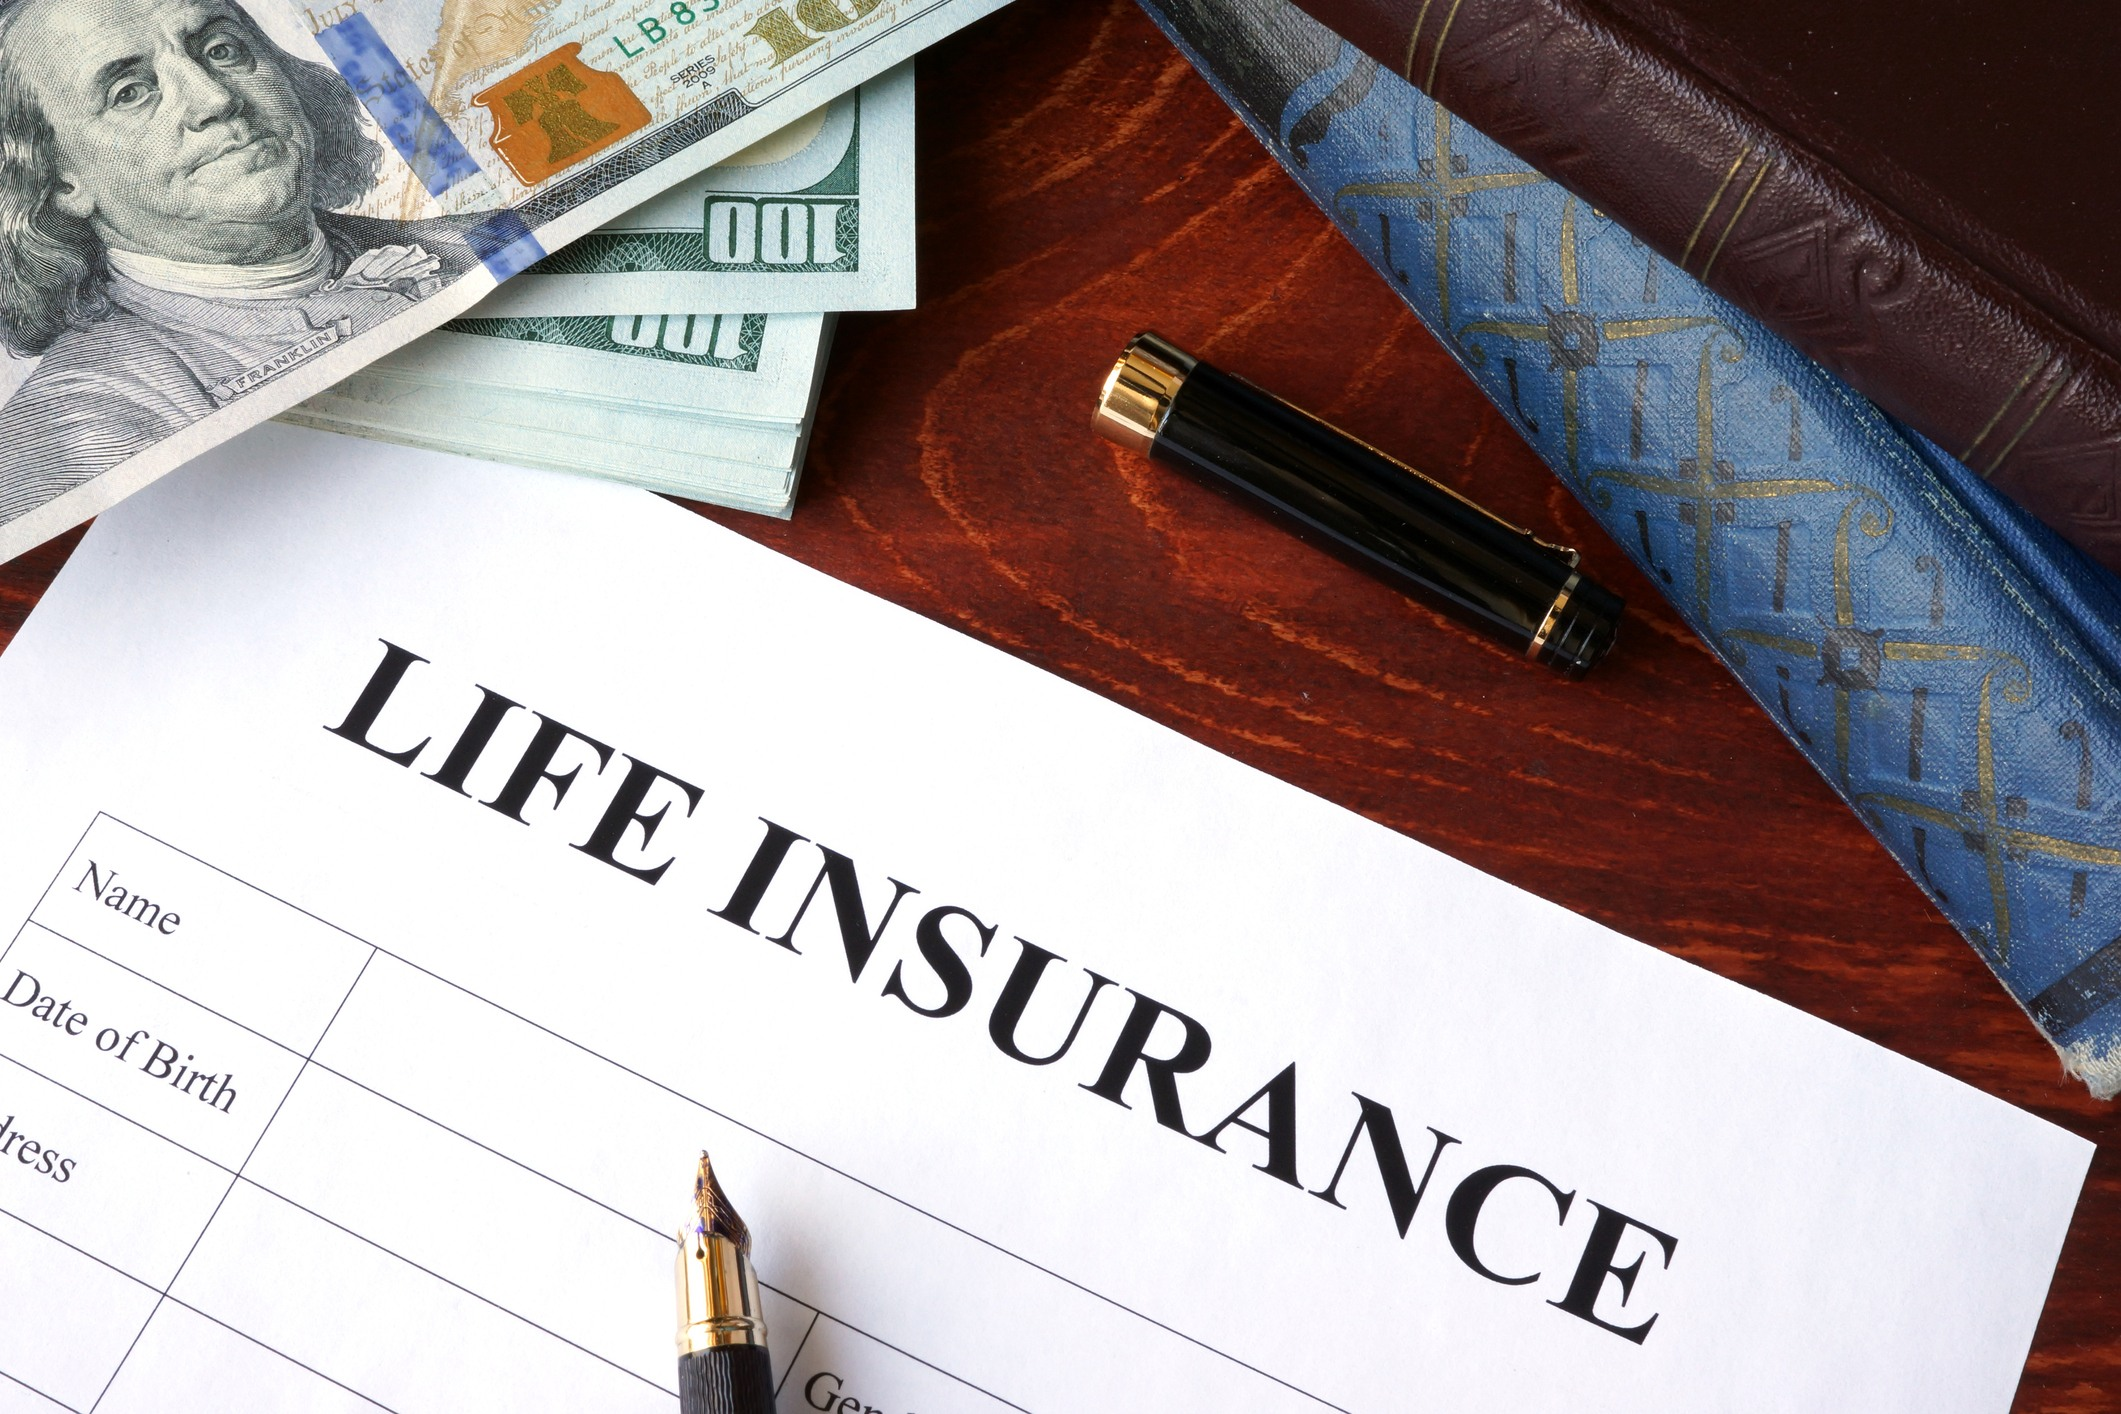 Life insurance policy and currency on a table.